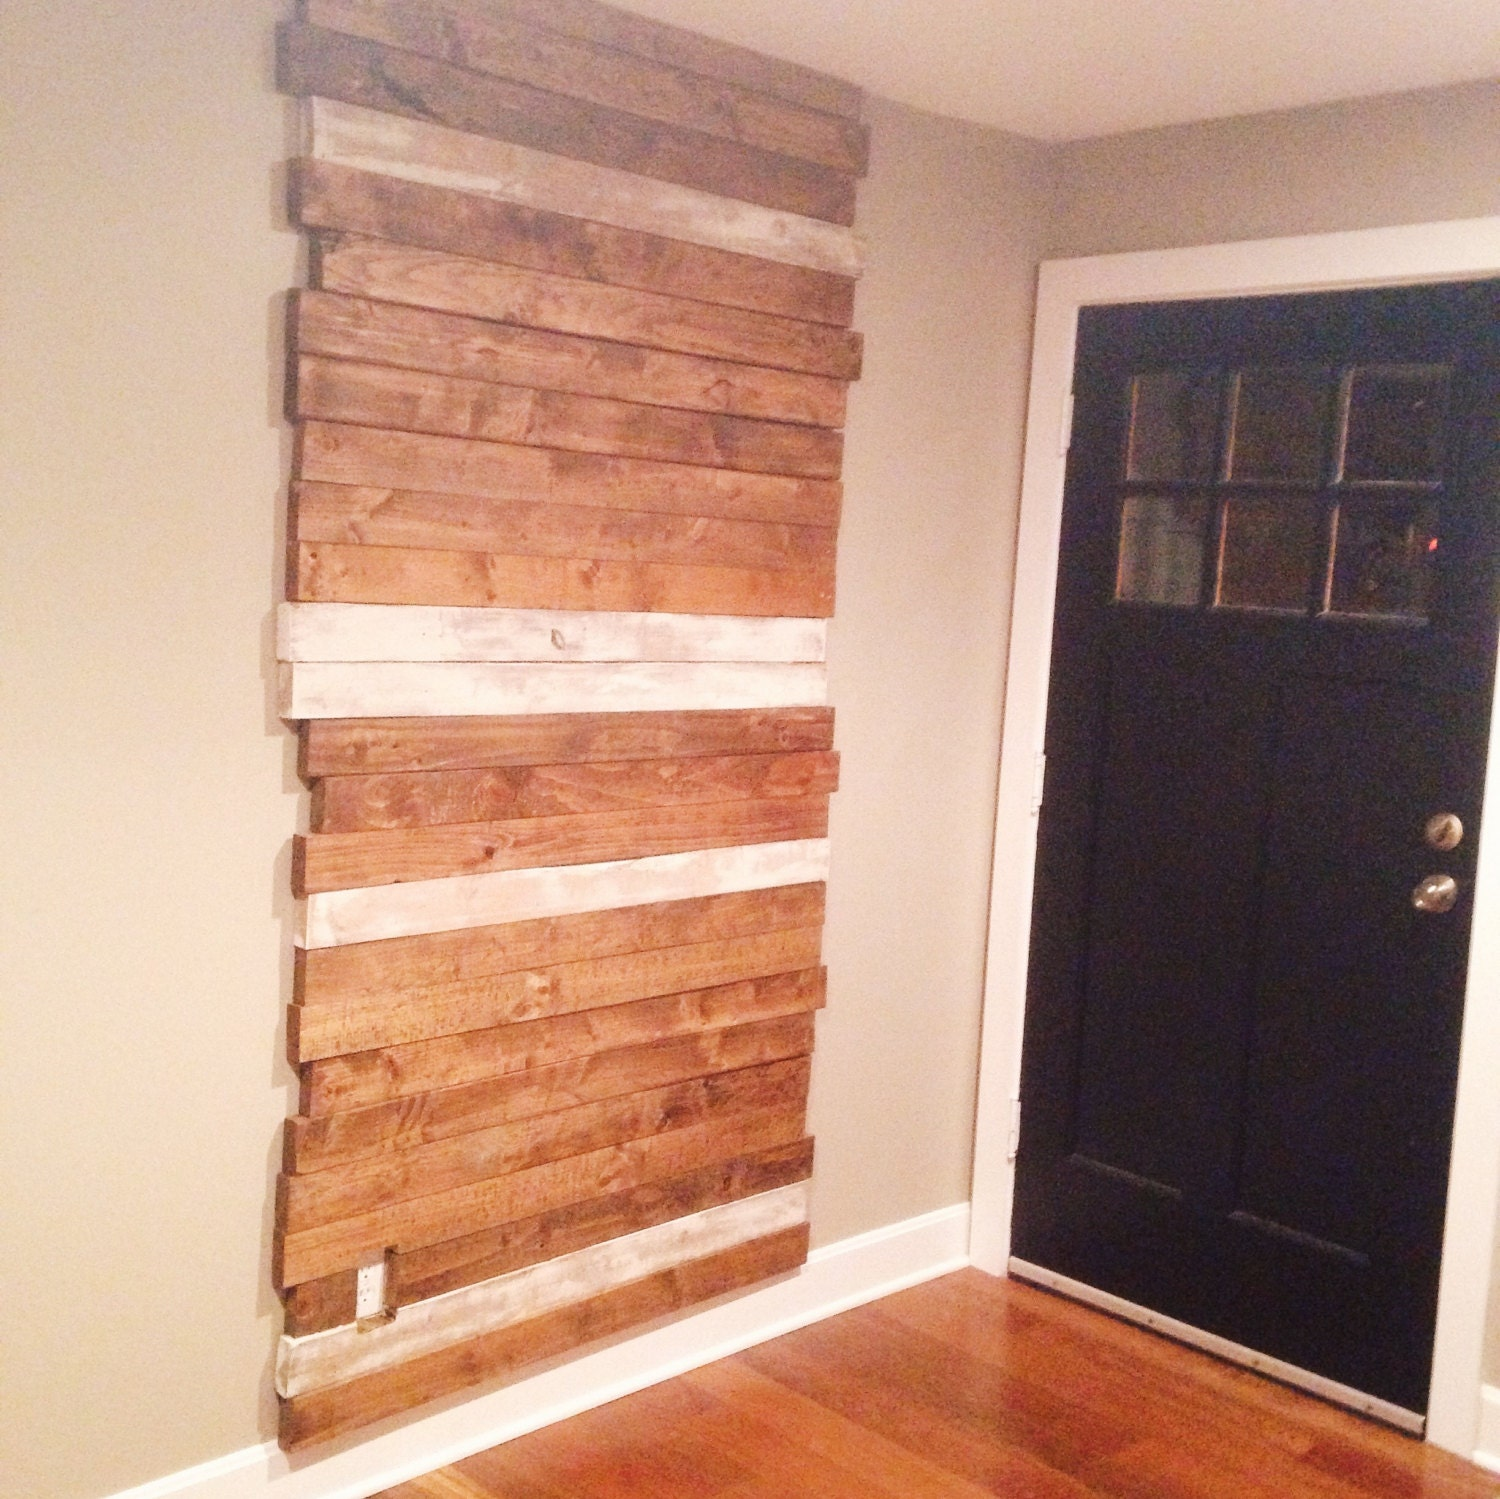 1970 Rustic Wood Accent Wall: Rustic Wood Wall Reclaimed Accent Wall